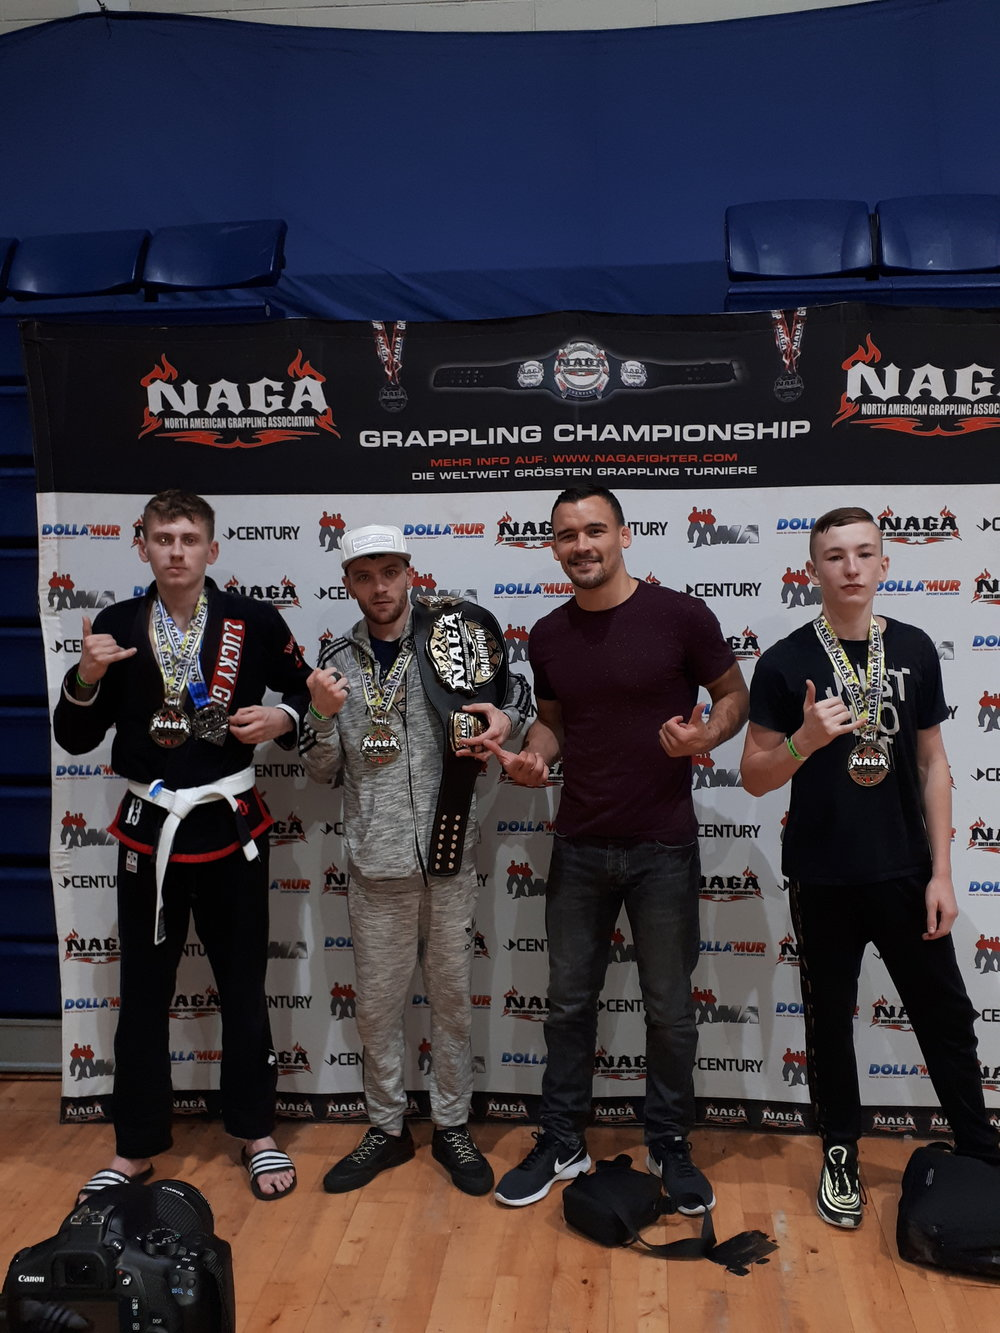 NAGA Dublin - A few of the team traveled to Dublin to compete at the North American Grappling Association. The team came away with 1 Championship Belt, 3 Gold and 1 Silver medal.02/09/2018